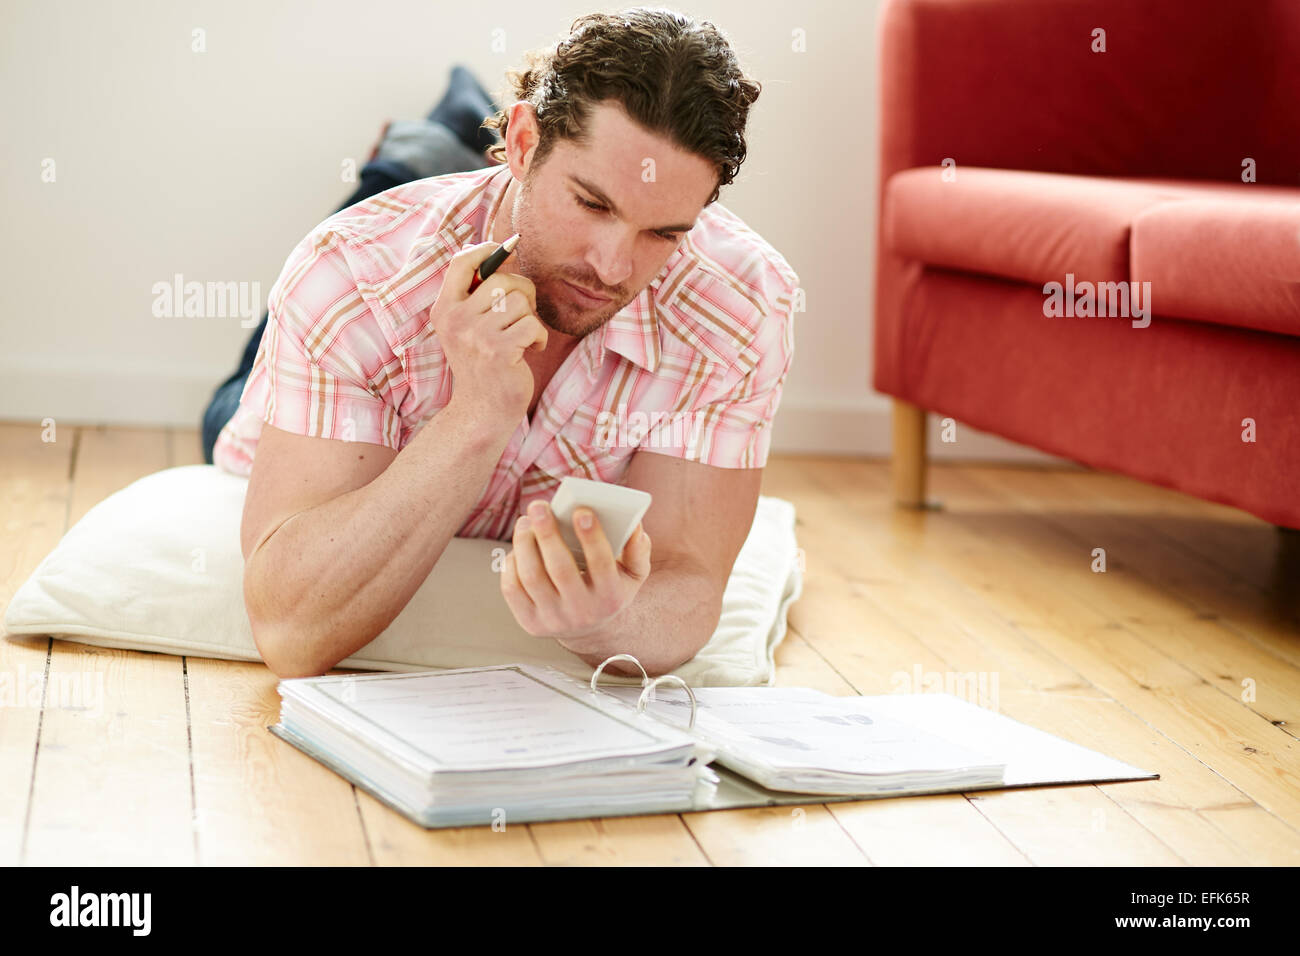 Male working out finances - Stock Image